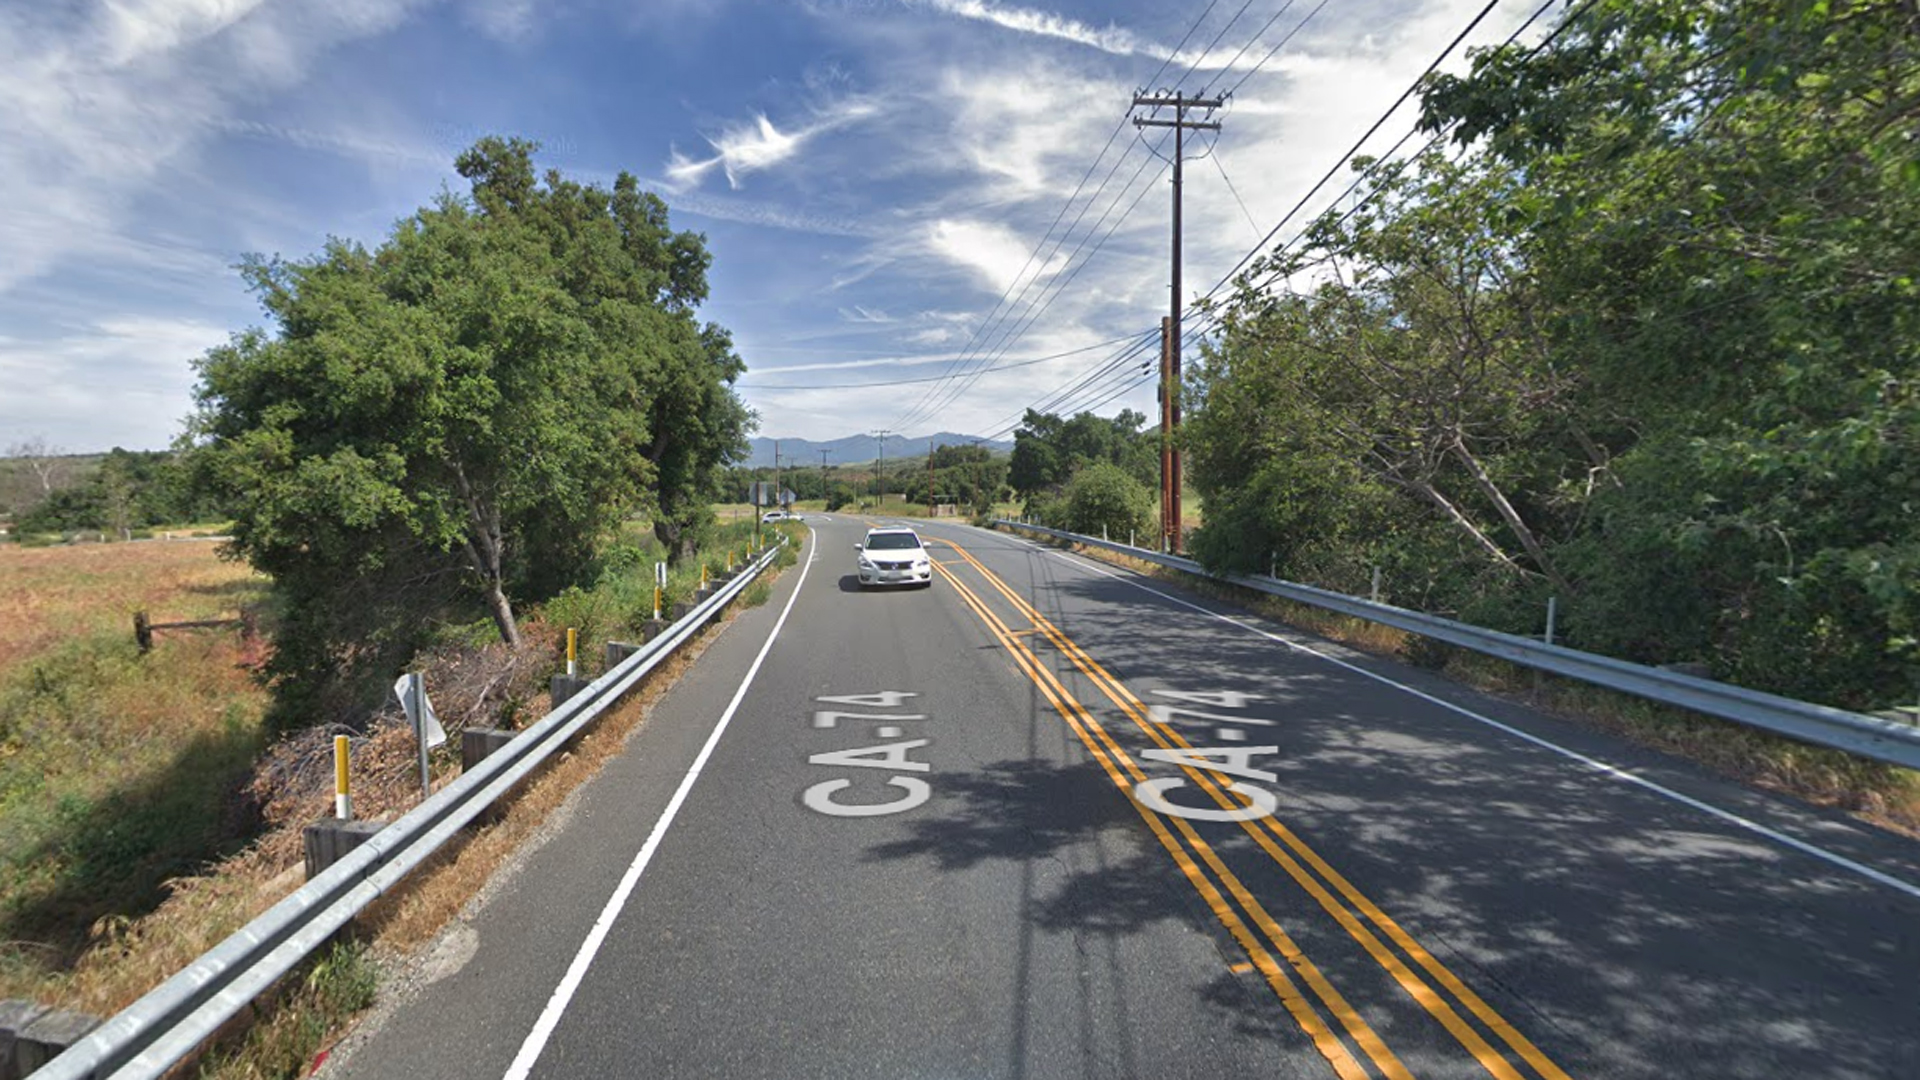 Ortega Highway, near the Ronald W. Caspers Wilderness Park outside of Rancho Mission Viejo, as pictured in an Google Street View image.